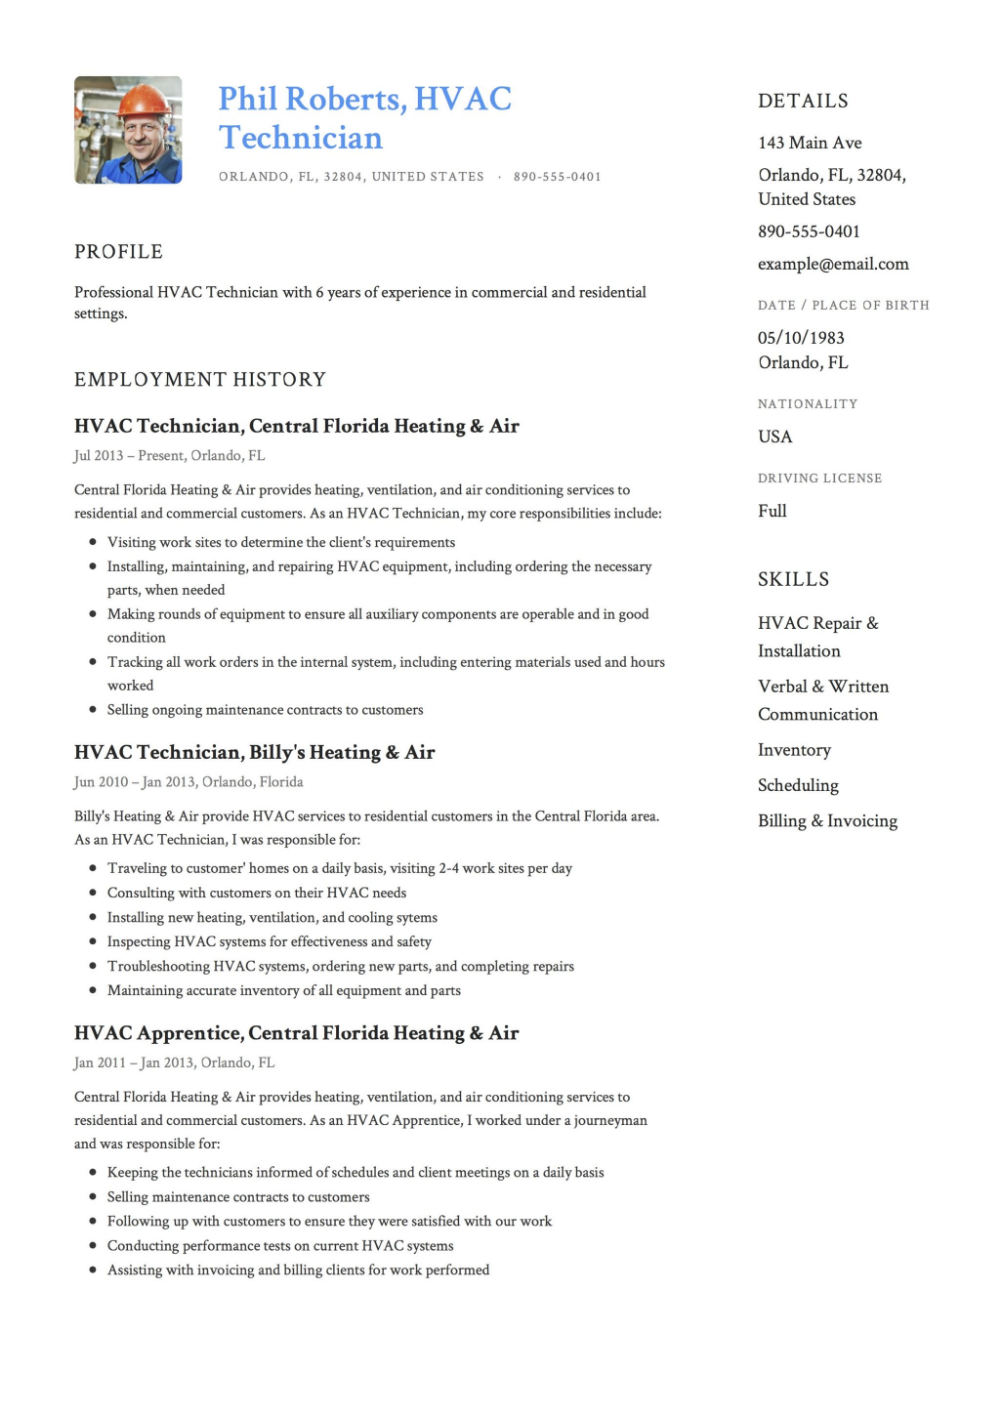 Resume Templates [2020] PDF and Word Free Downloads